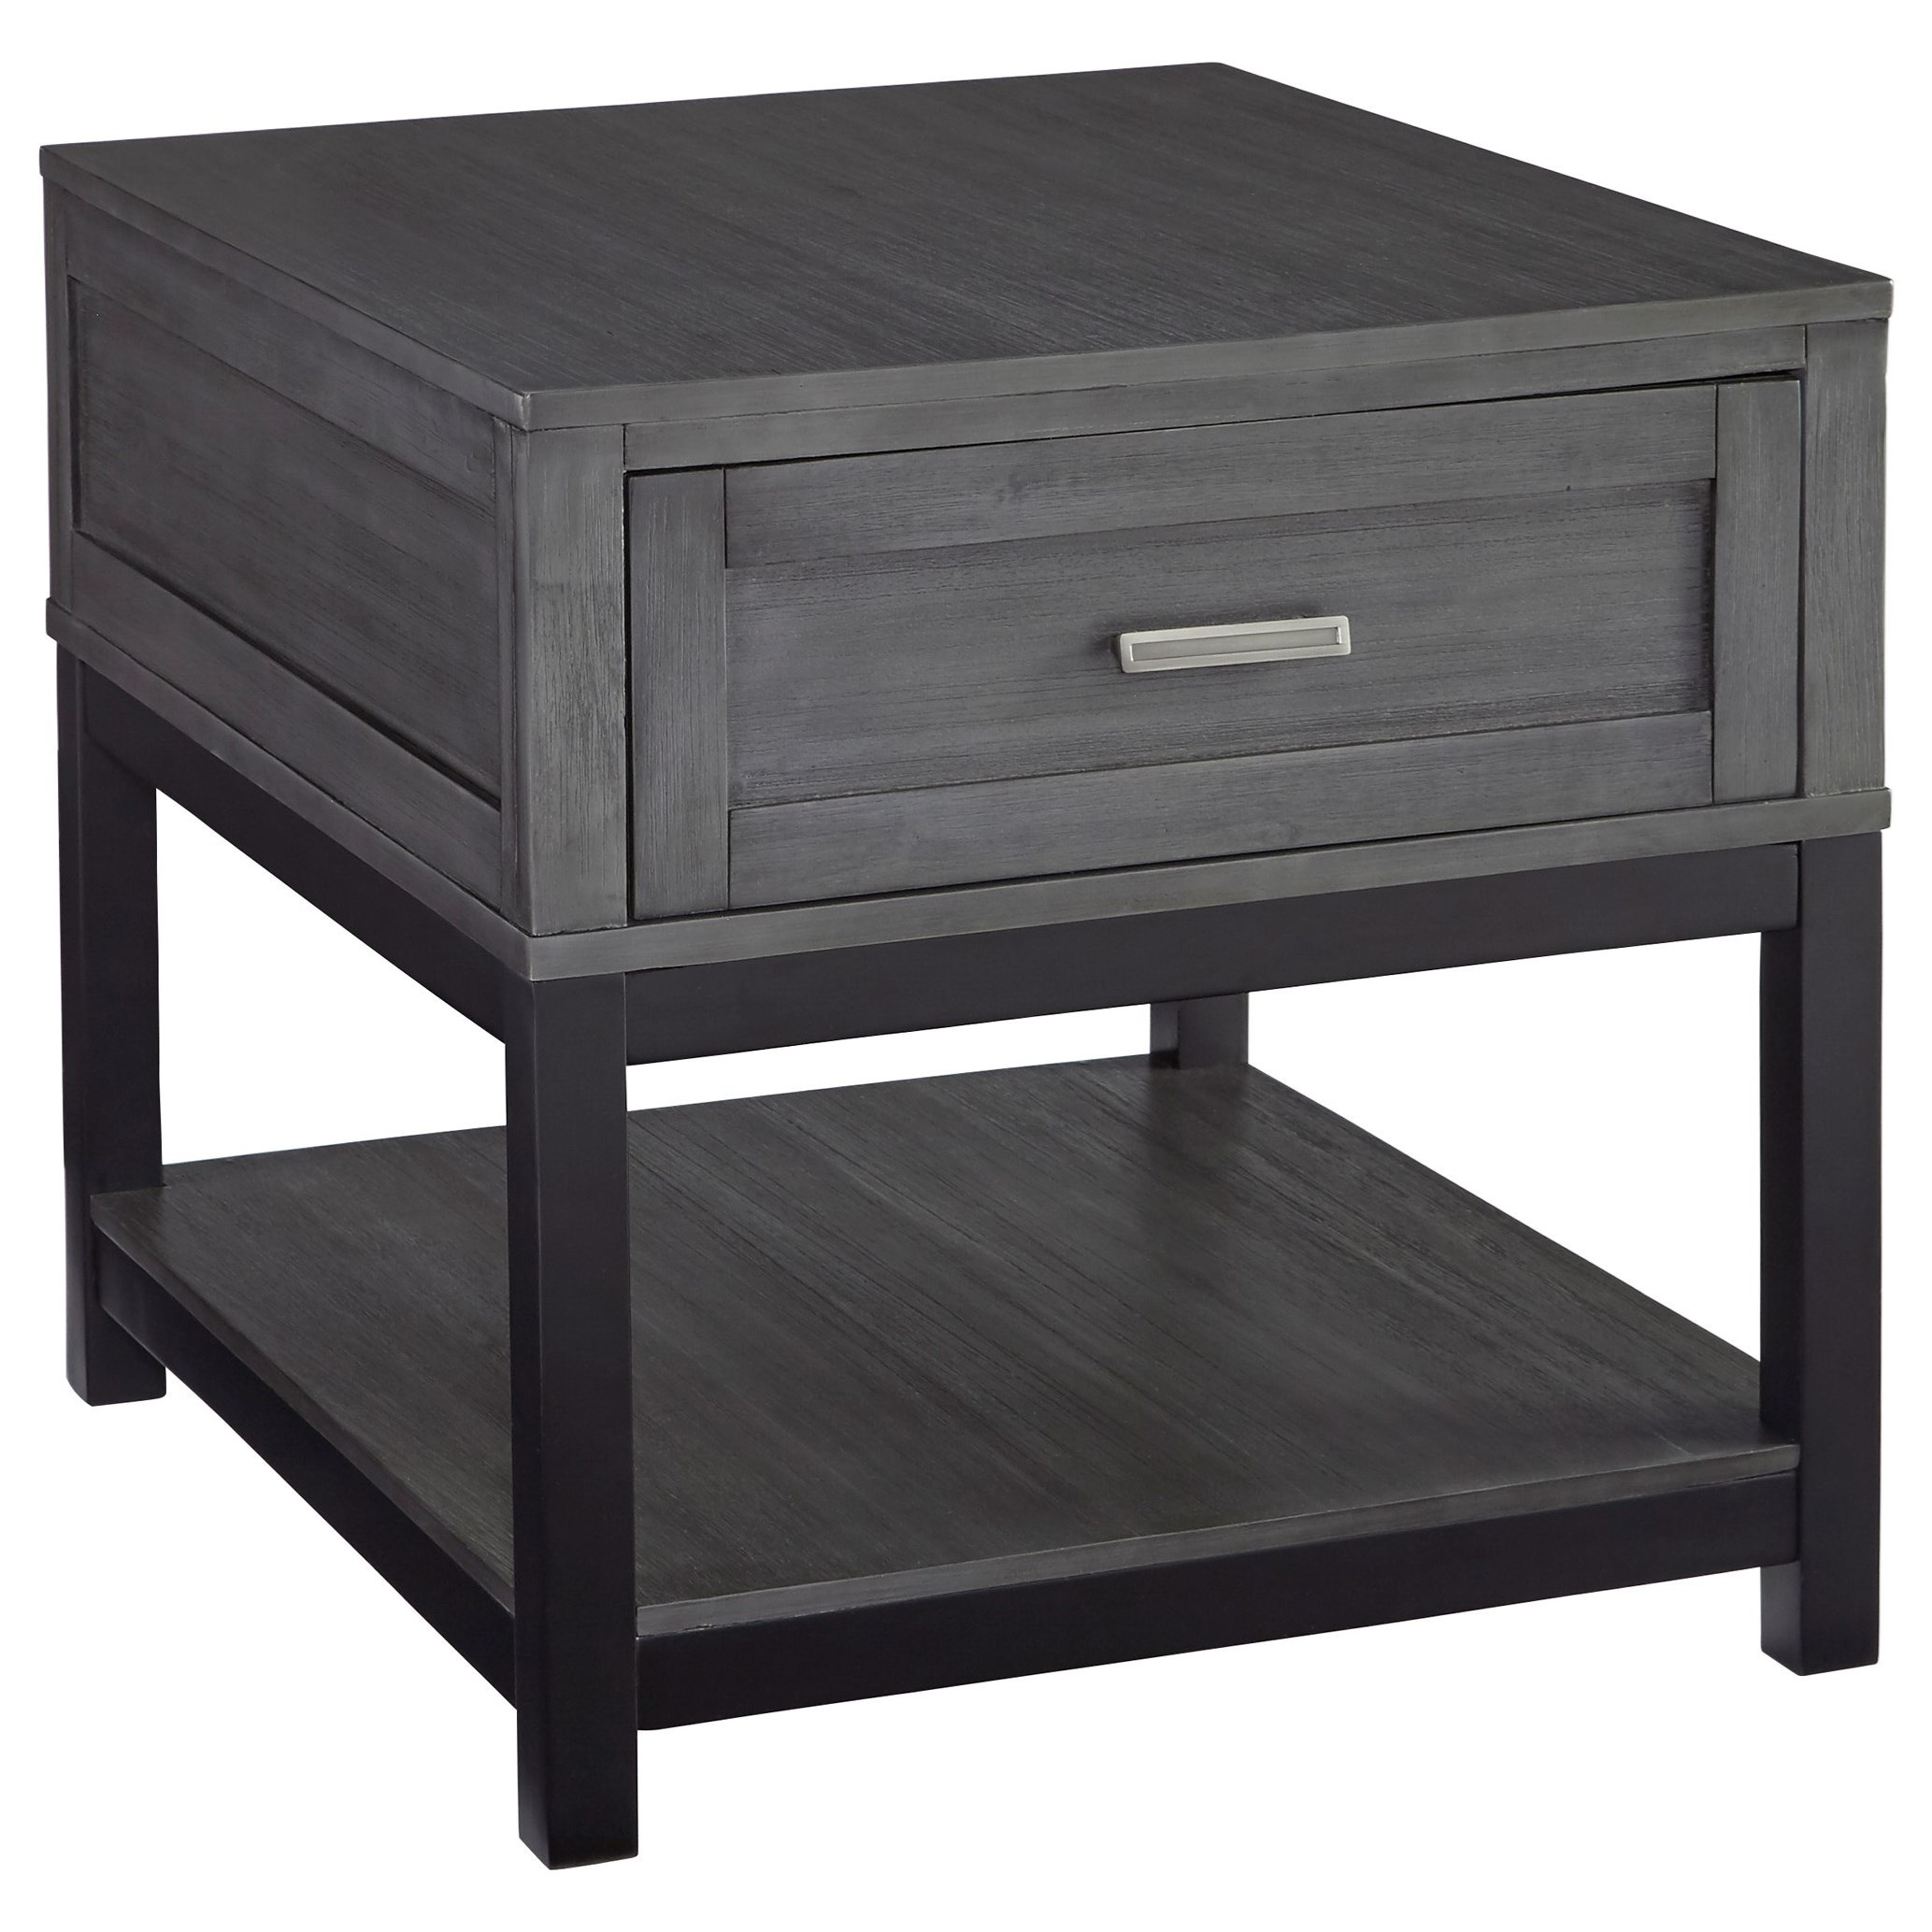 Caitbrook Rectangular End Table by Signature Design by Ashley at Home Furnishings Direct